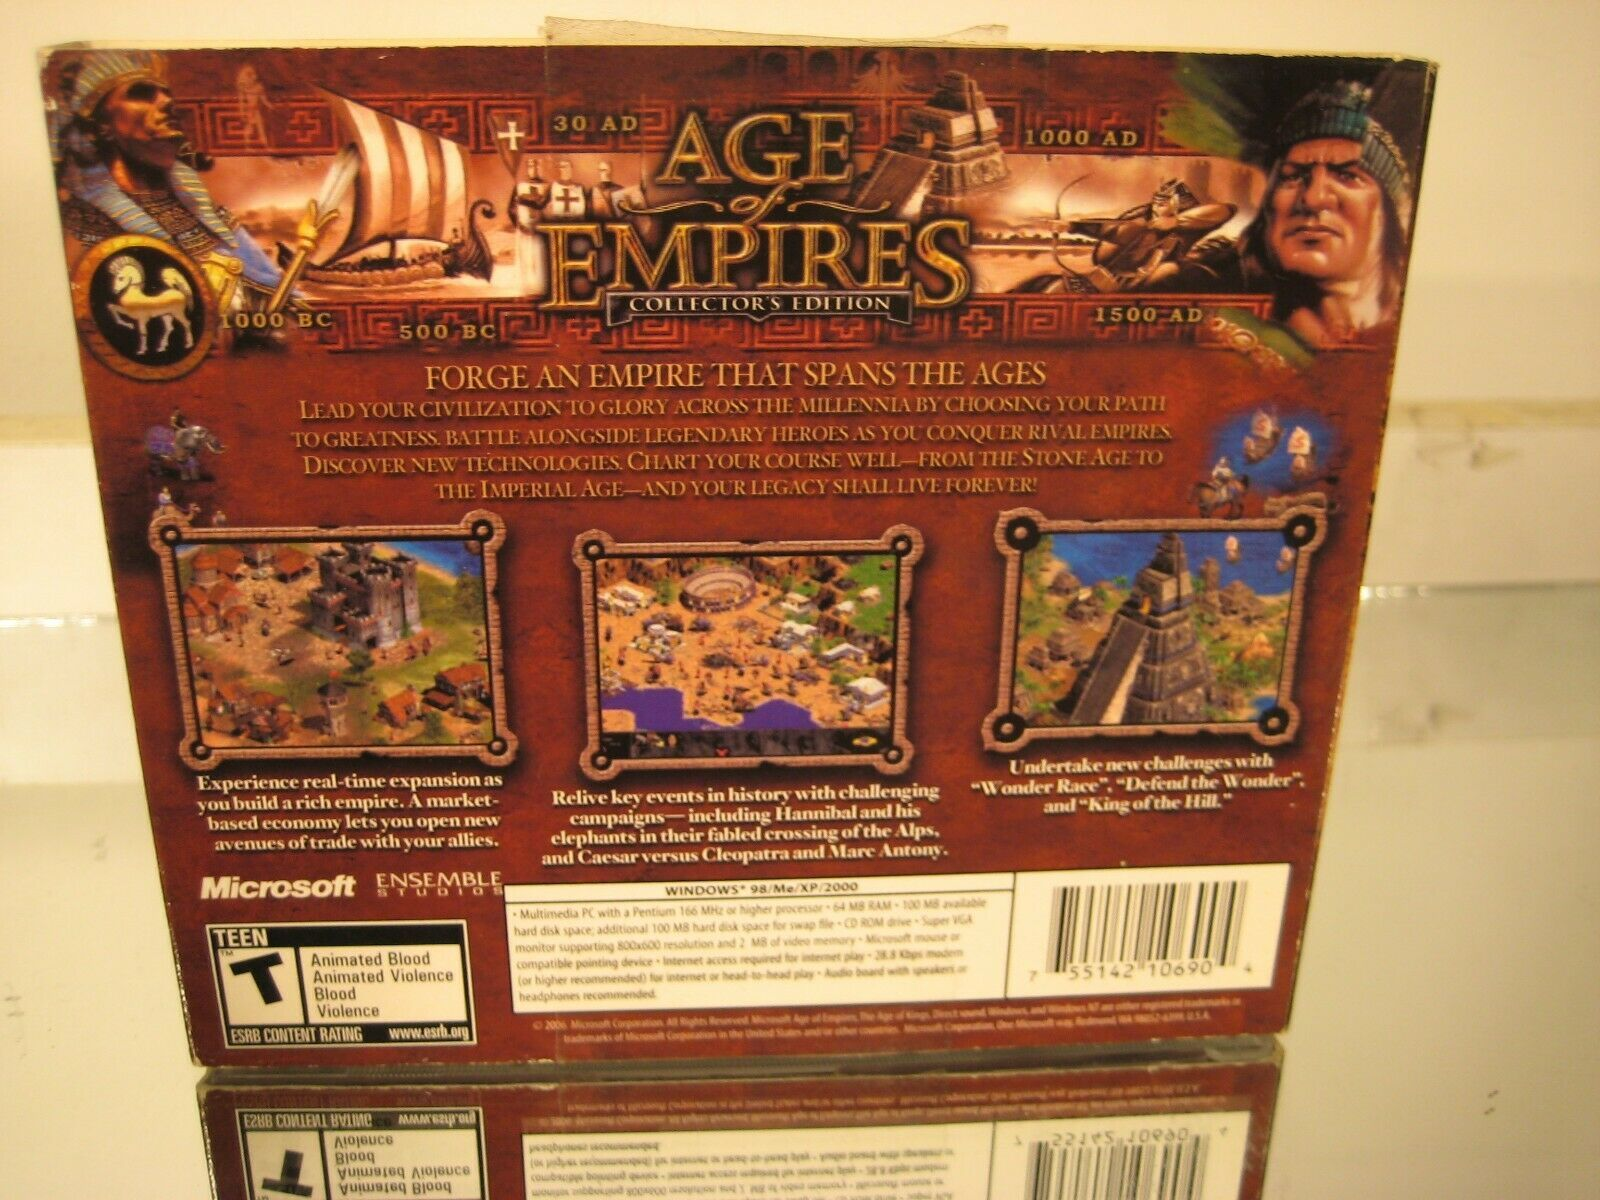 Age of Empires Collectors' Edition 2000 PC CDROM RTS Game image 2